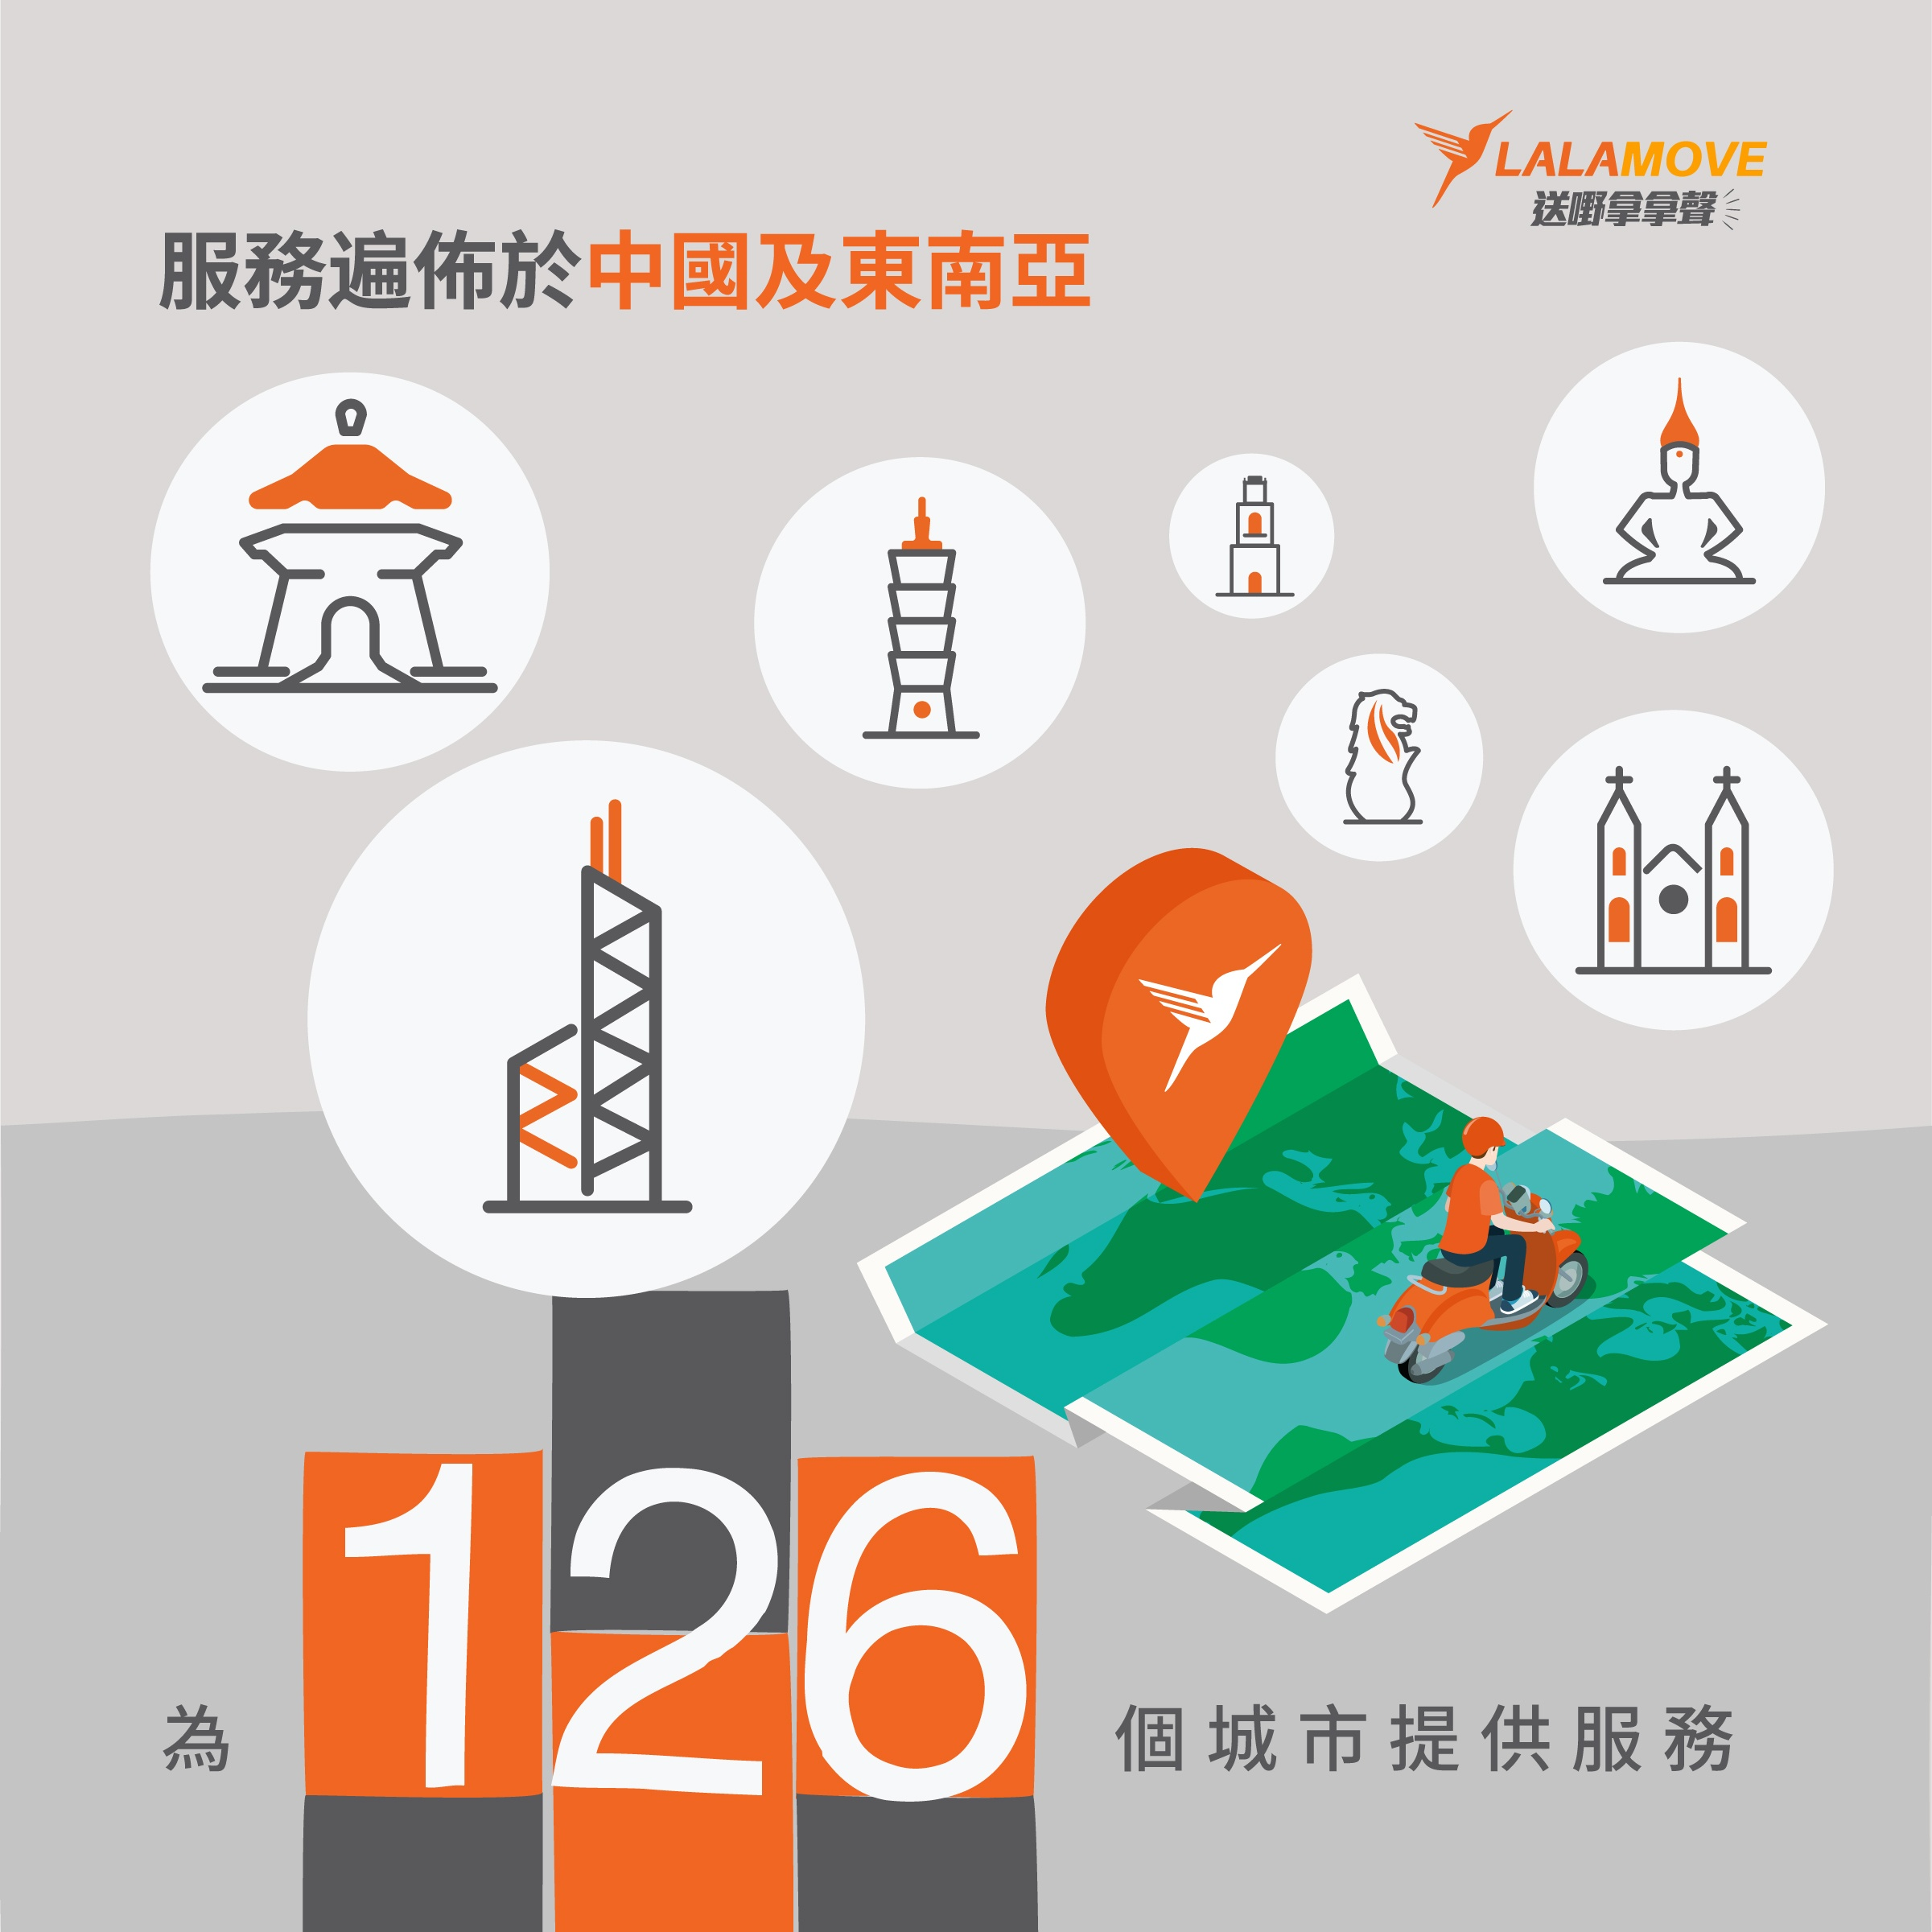 HK_fb_ad_funfactdata_20180419_cities-01